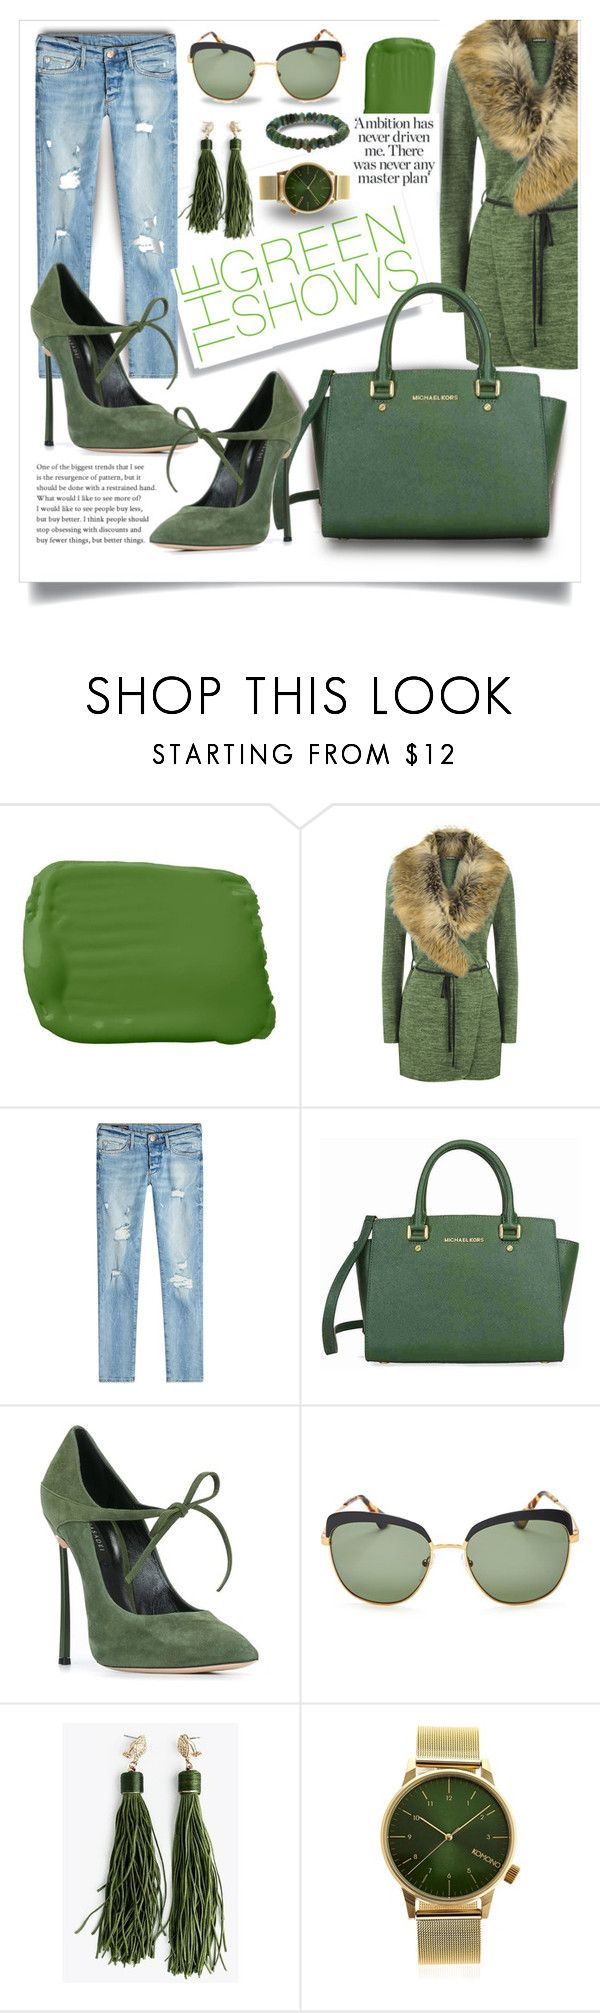 """""""Green with Envy"""" by city-mom ❤ liked on Polyvore featuring Ralph Lauren, WearAll, True Religion, Michael Kors, Casadei, Prada, Komono, Sydney Evan, GREEN and polyvoreeditorial"""